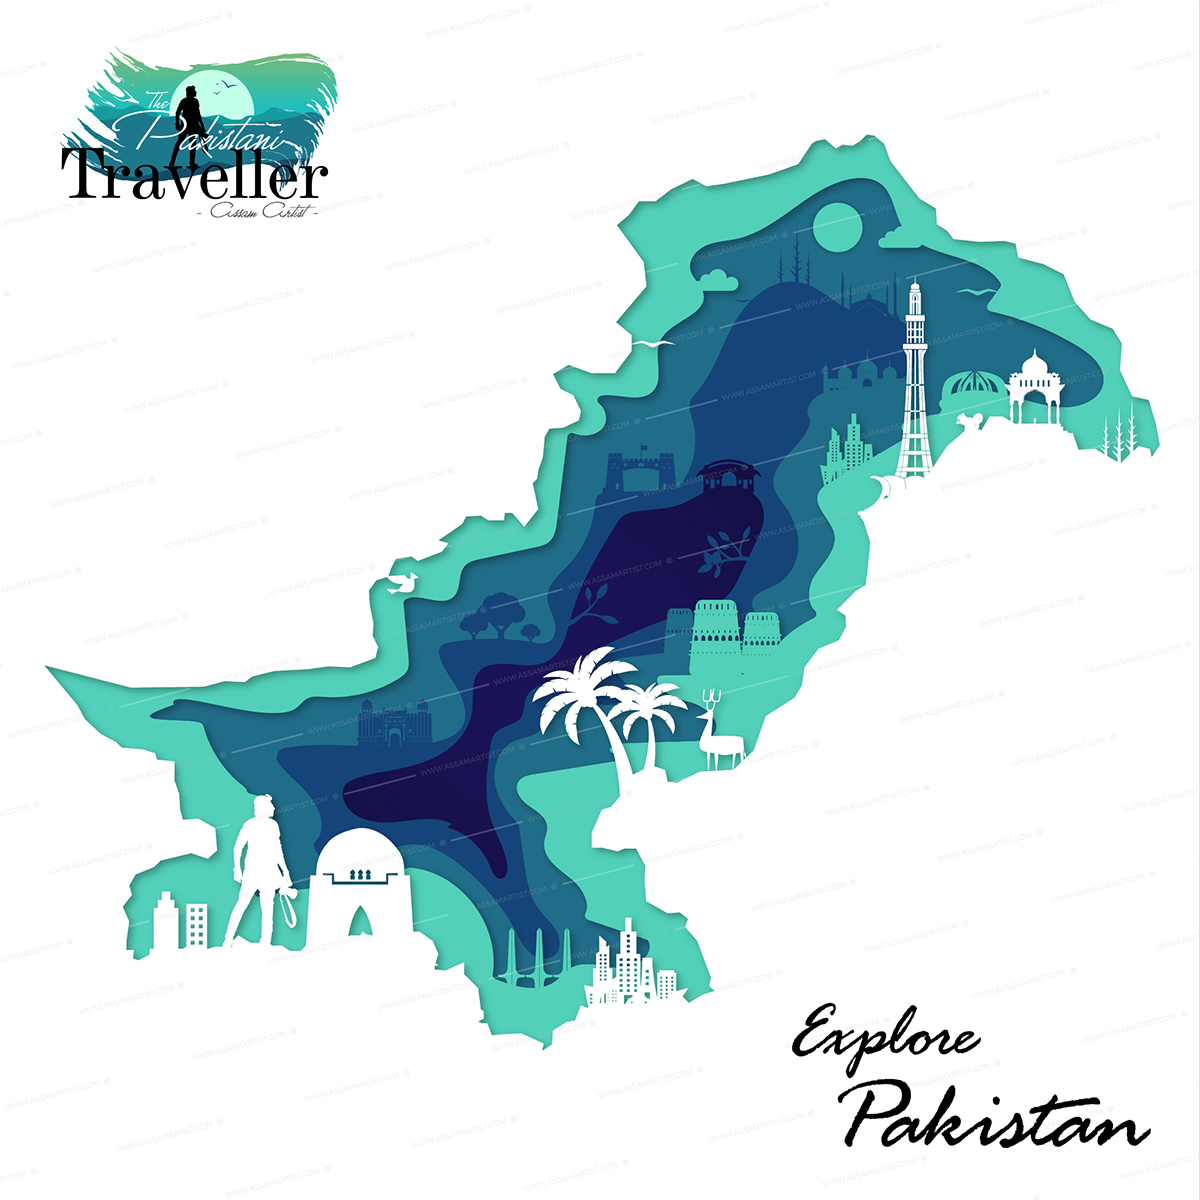 Pakistan tourist map